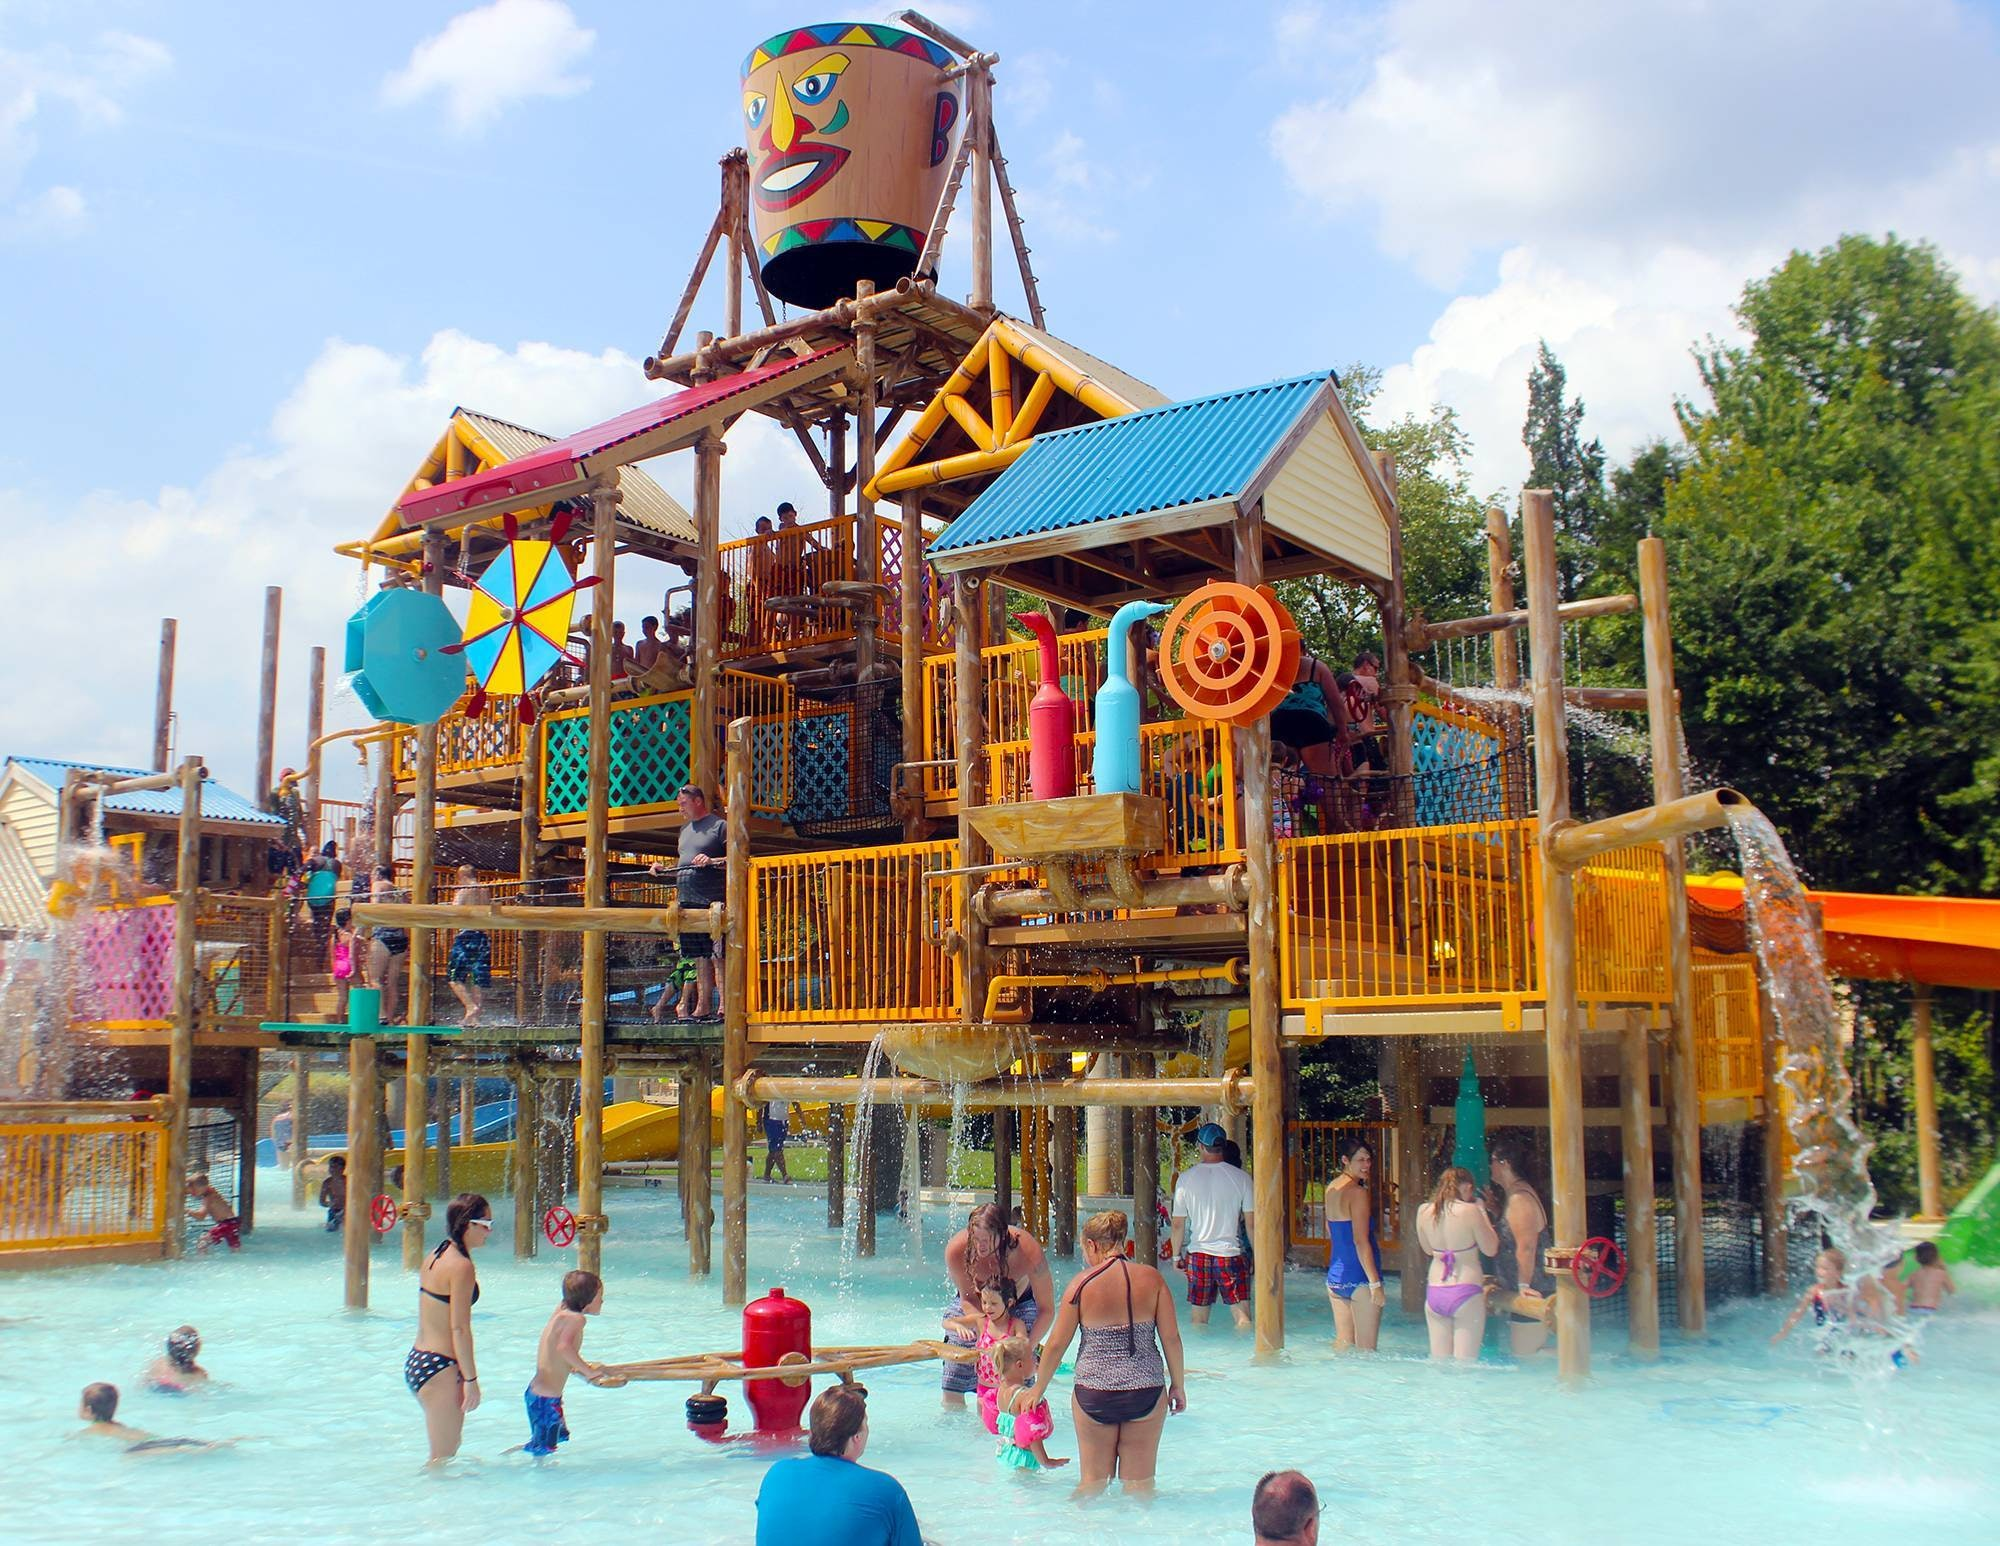 The 10 Best Water Parks in The U.S.: Where You Should Go To Cool Off ...